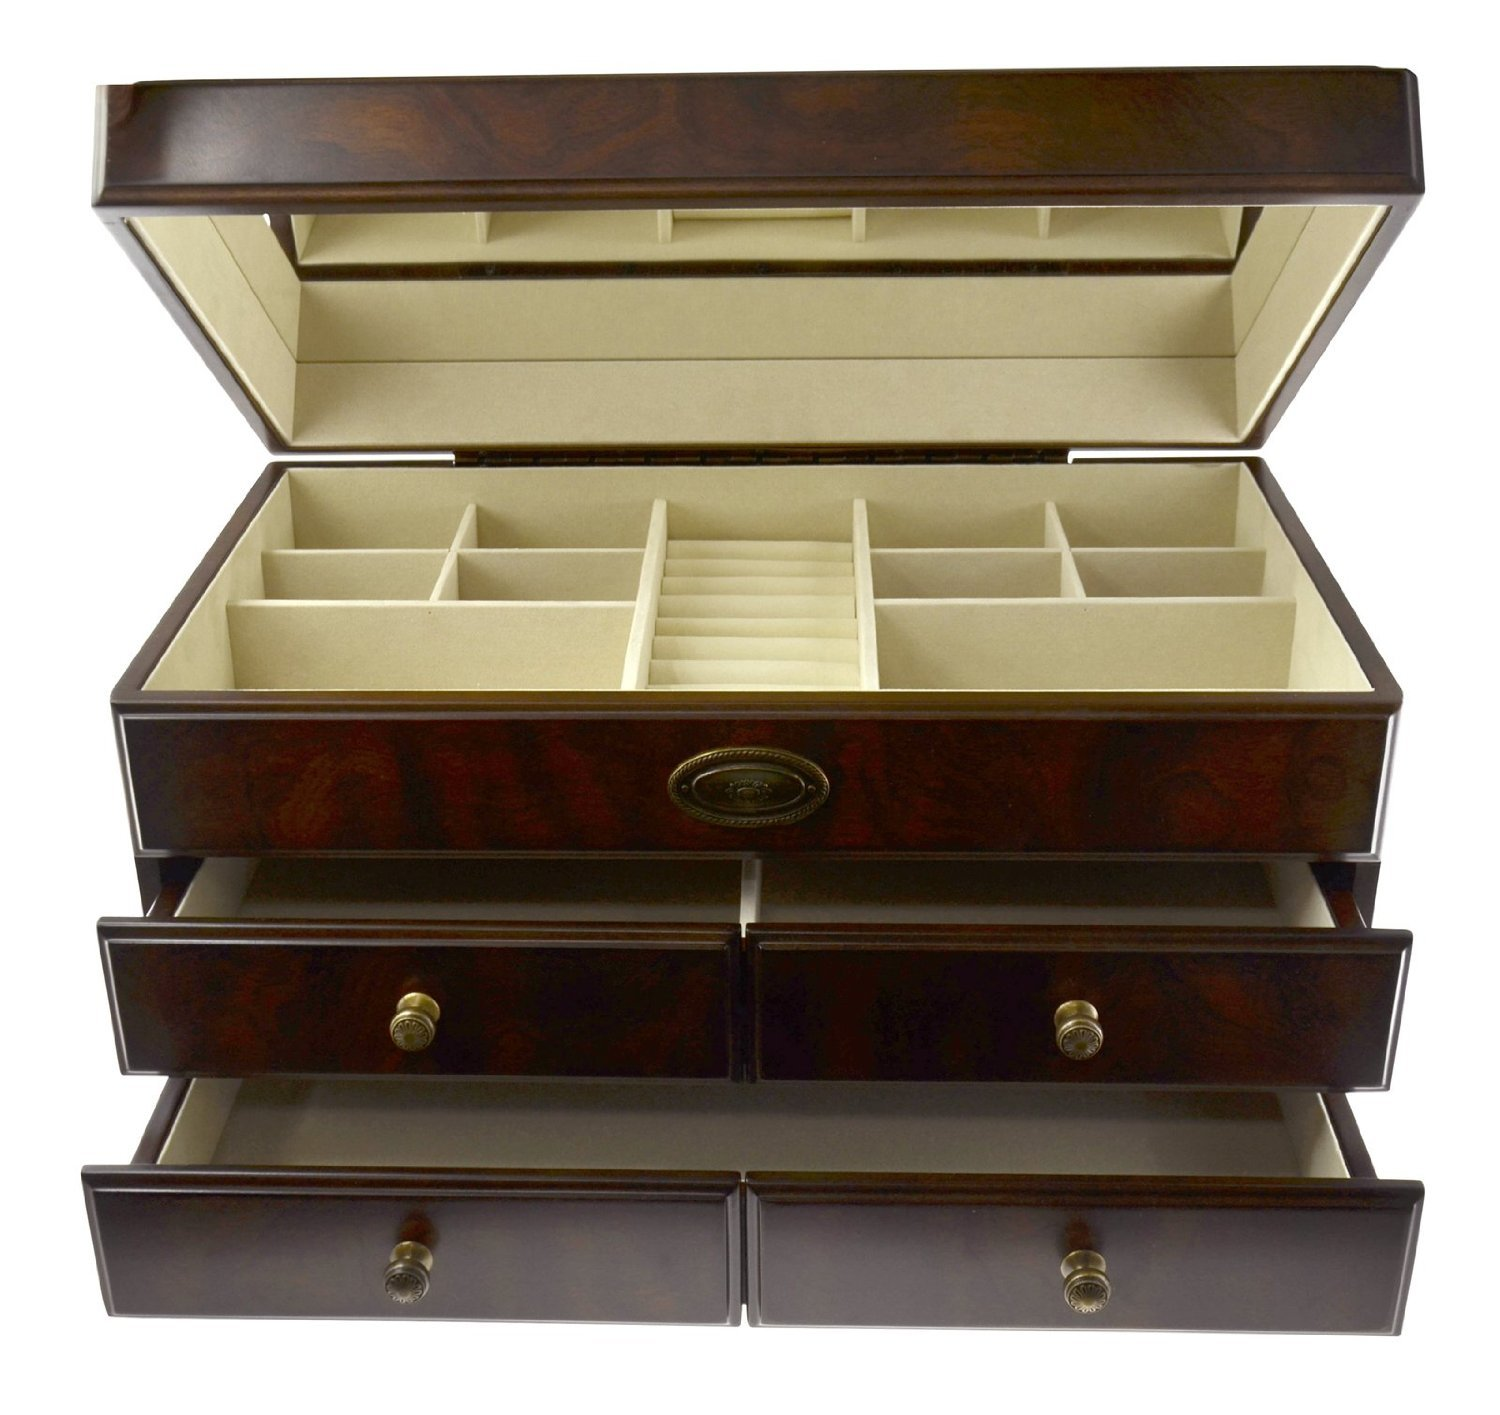 Vintage Classic Jewelry Box Storage Container Brand Bombay Dimensions 10''H x 18''W x 10''D